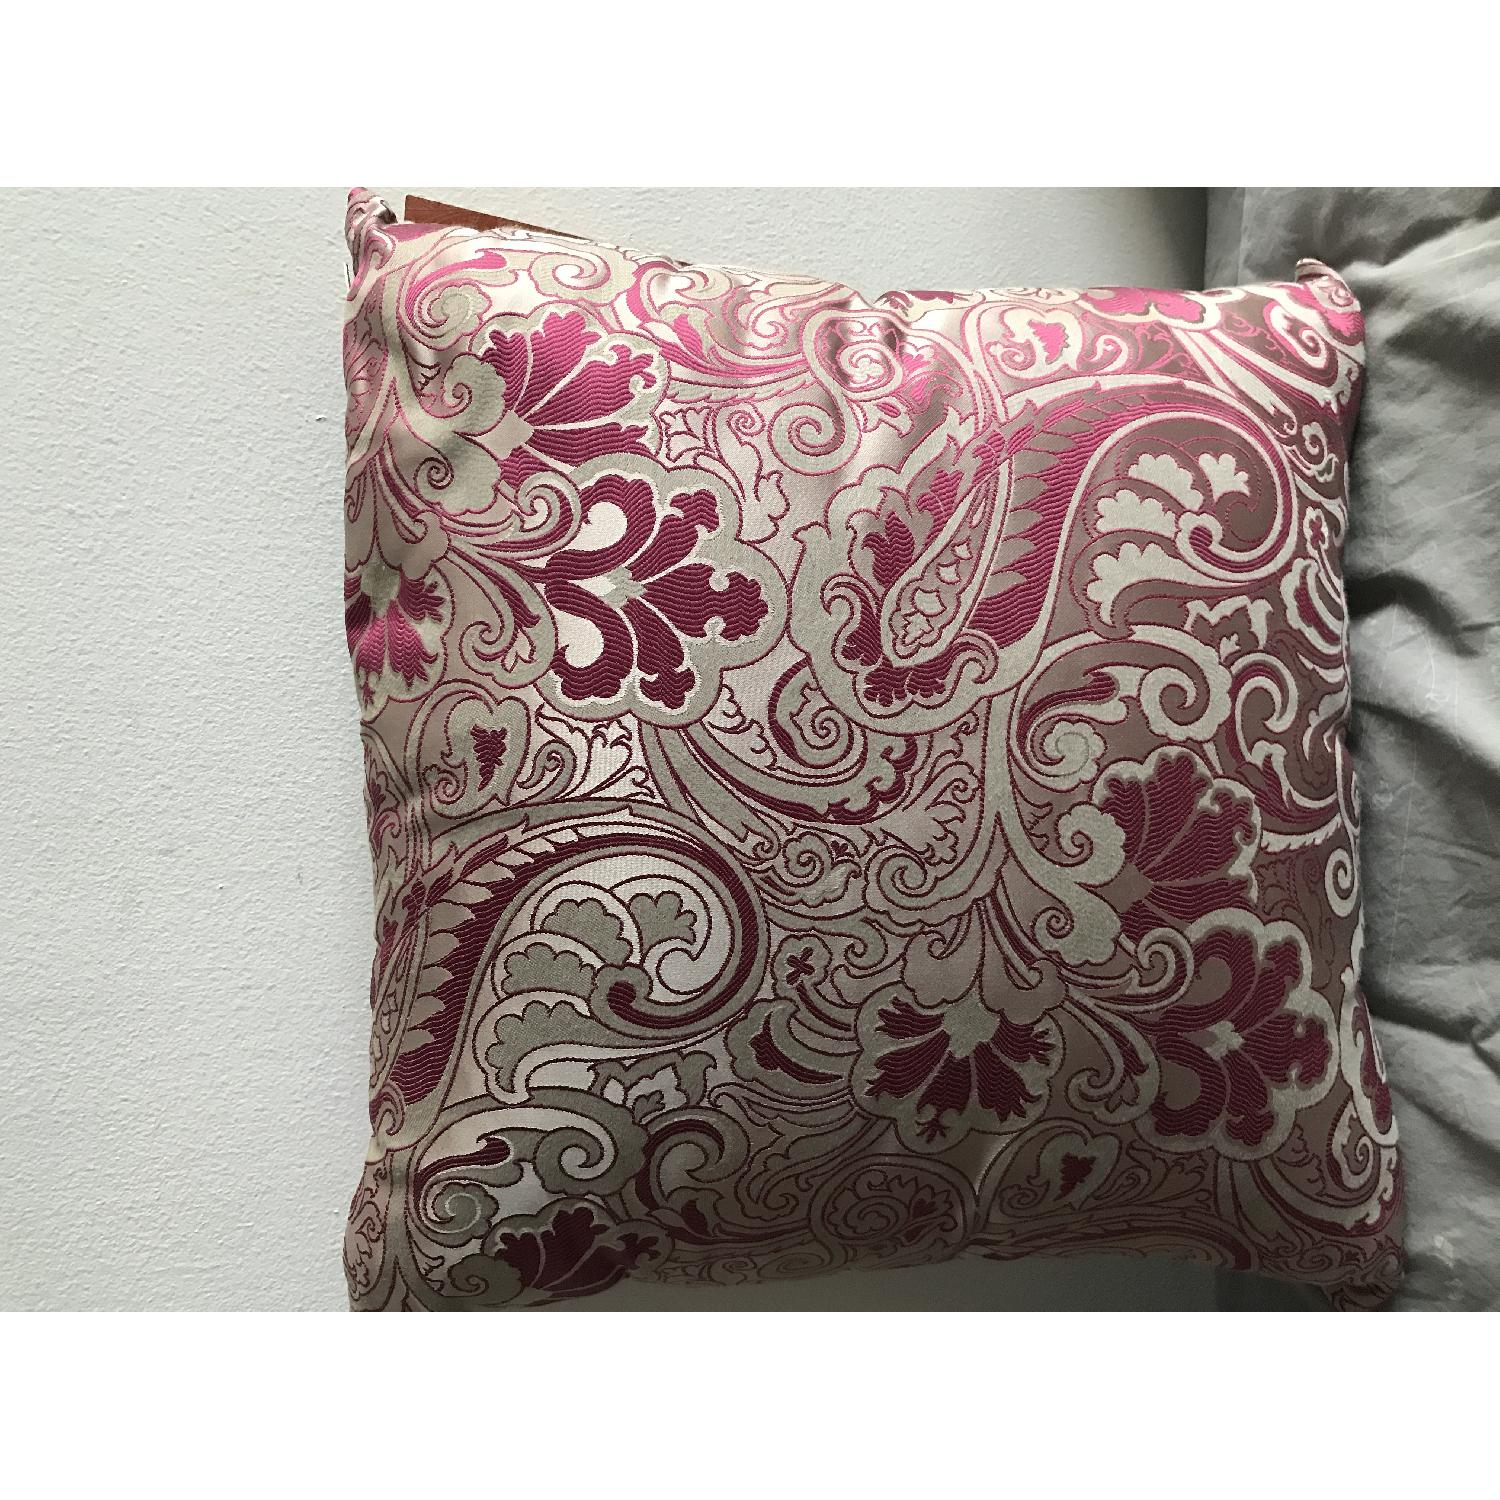 Etro Home Pink Paisley Square Decorative Pillow - image-4